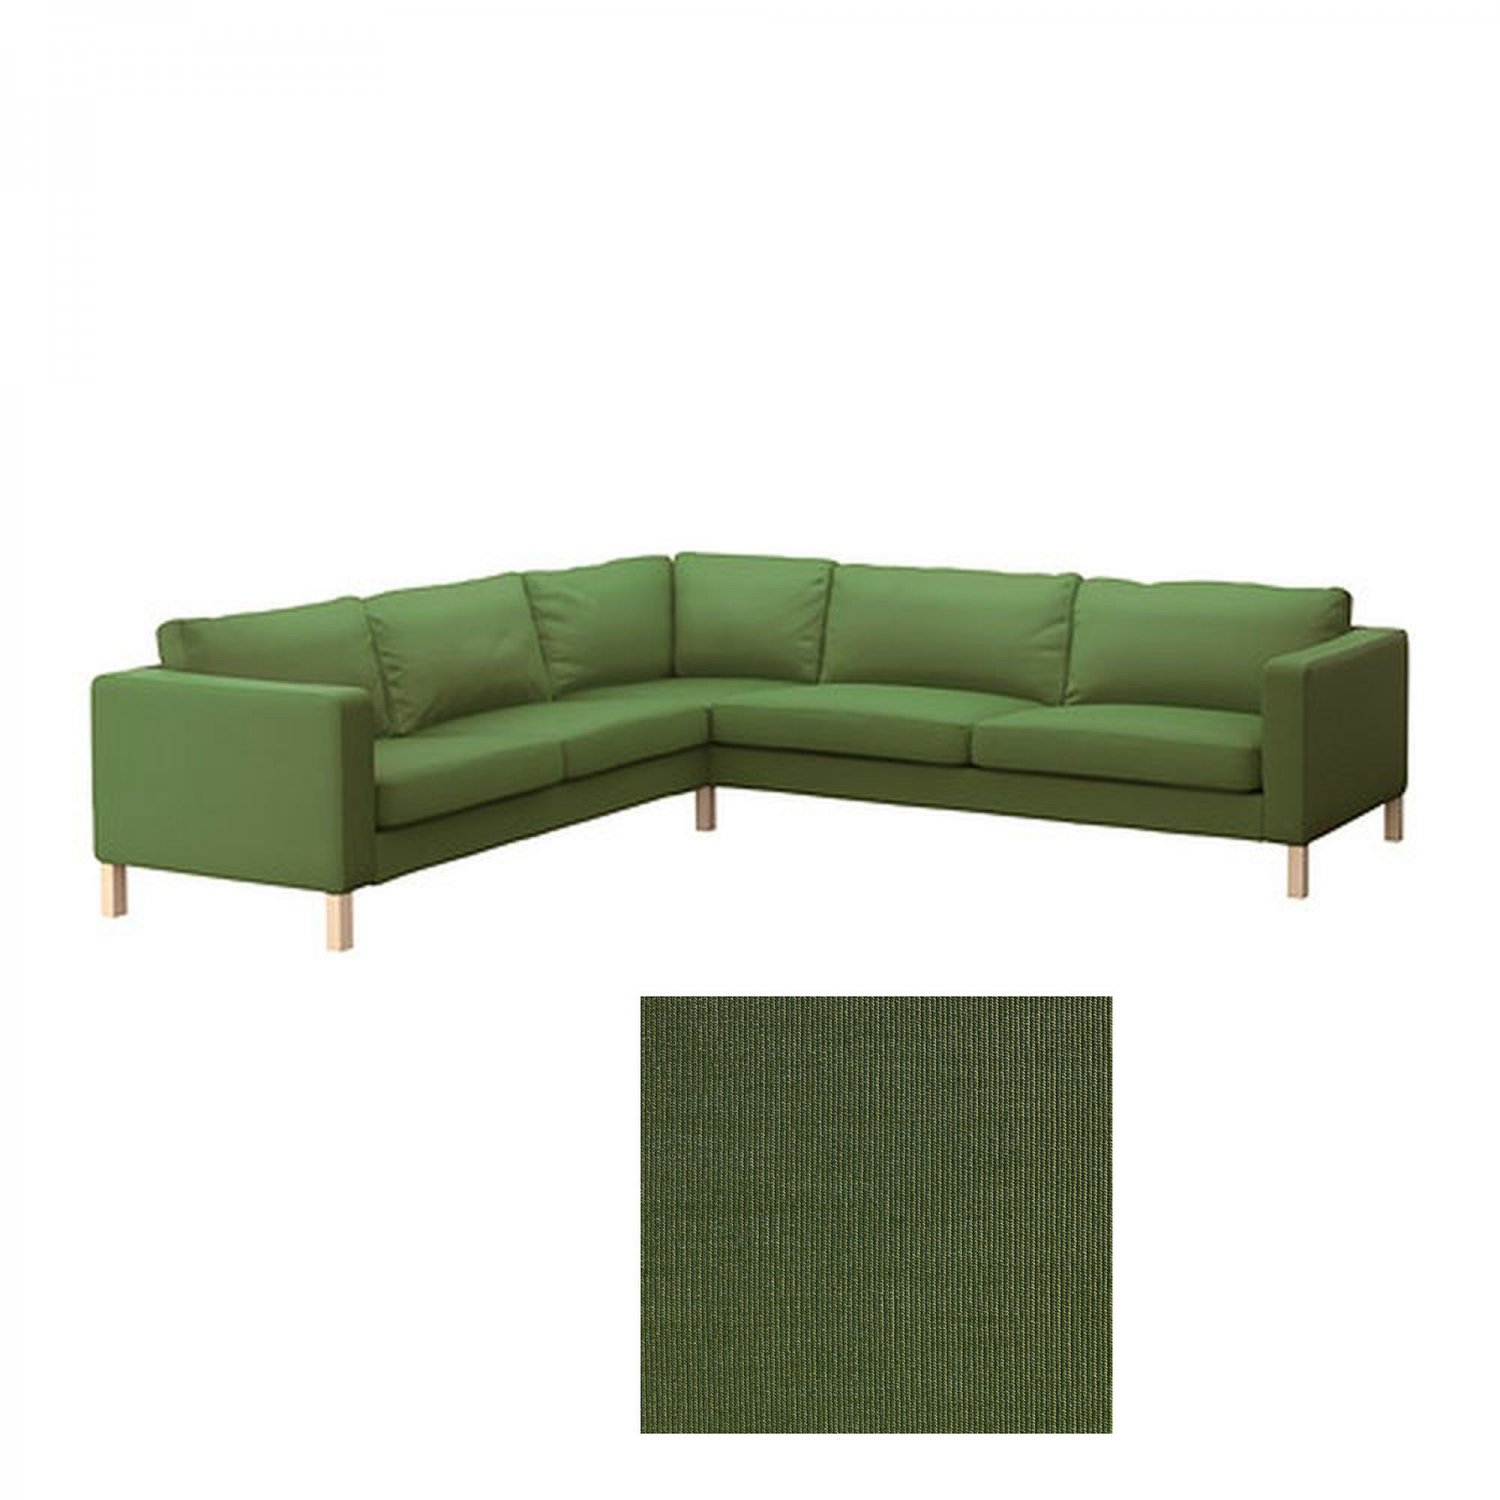 ikea sectional slipcover with Ikea Karlstad Corner Sofa Slipcover on Small Footstools Ikea Cheap Ottoman Ikea additionally Ikea Karlstad Corner Sofa Slipcover furthermore Ikea Ektorp 22 Corner Sofa Cover further Ikea Kivik Sofa Slipcover Cover also Ikea Farlov Sofa Review Back To Basics.